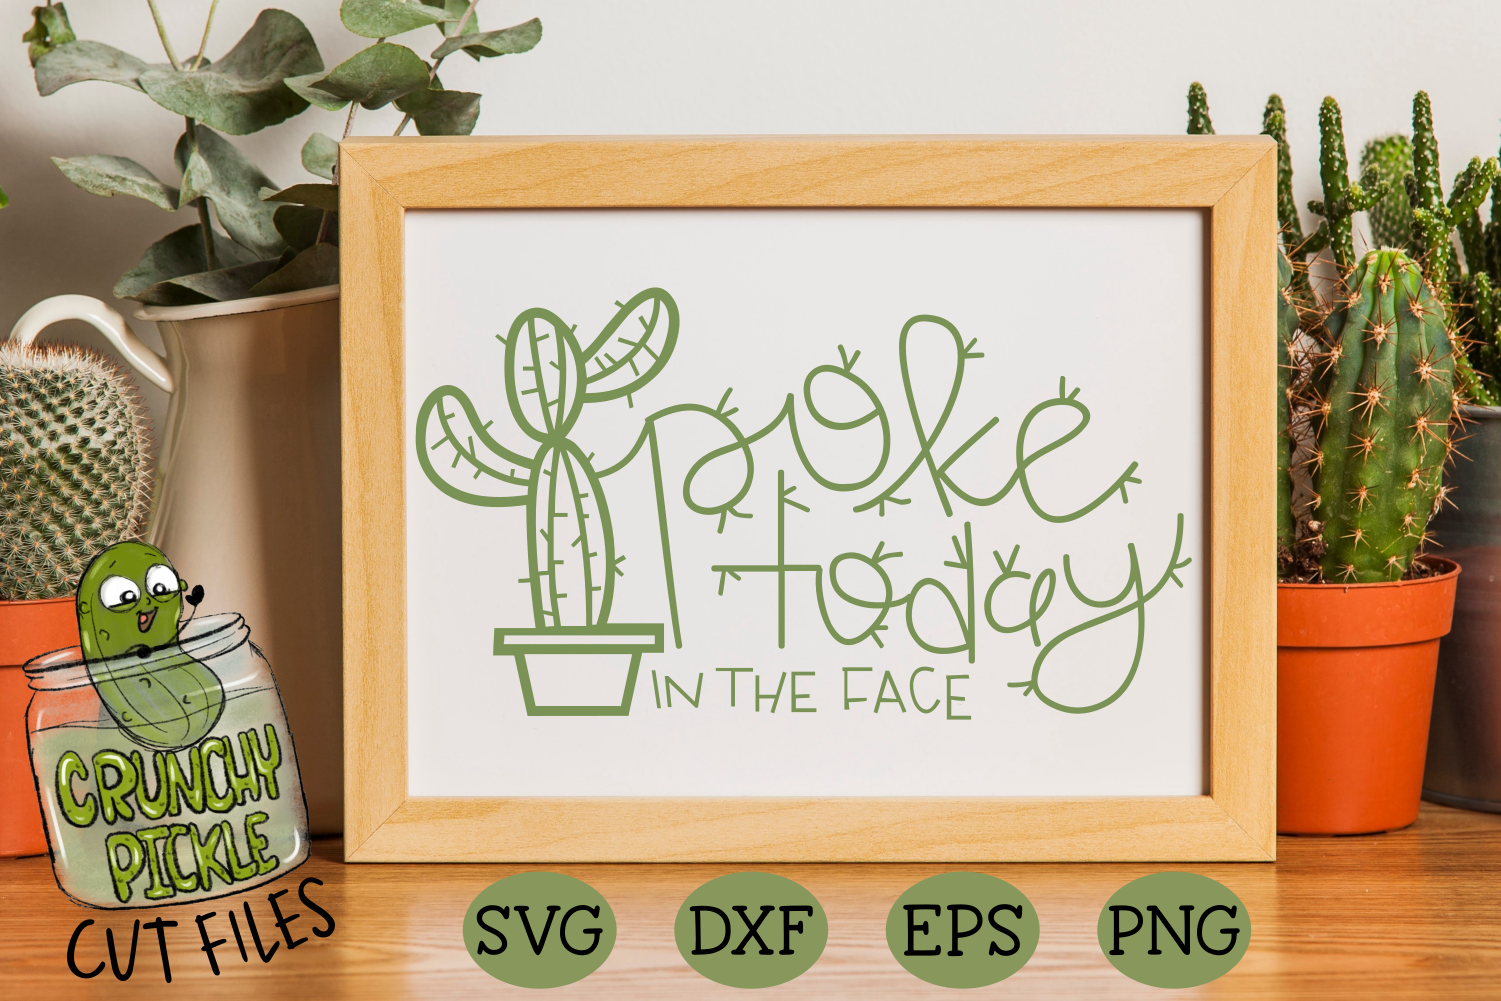 Download Free Poke Today In The Face Cactus Pun Graphic By Crunchy Pickle Creative Fabrica for Cricut Explore, Silhouette and other cutting machines.